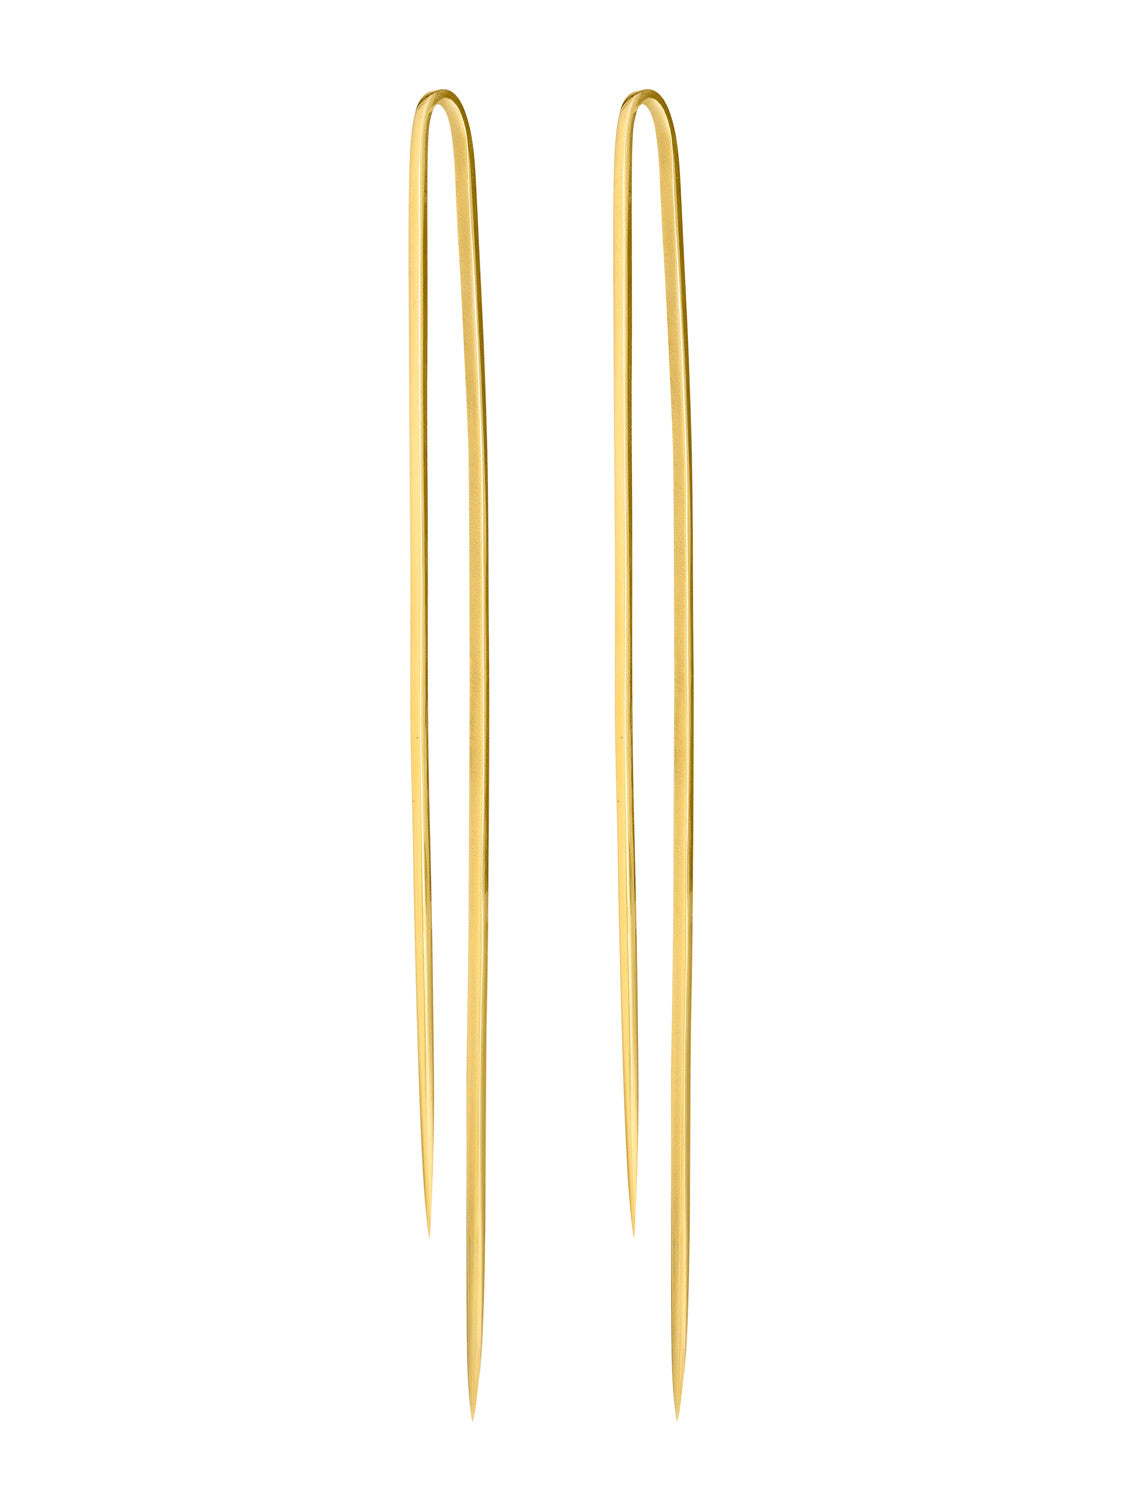 Coco\'s Liberty: Bar earrings, long | Jewelry -  Hiphunters Shop